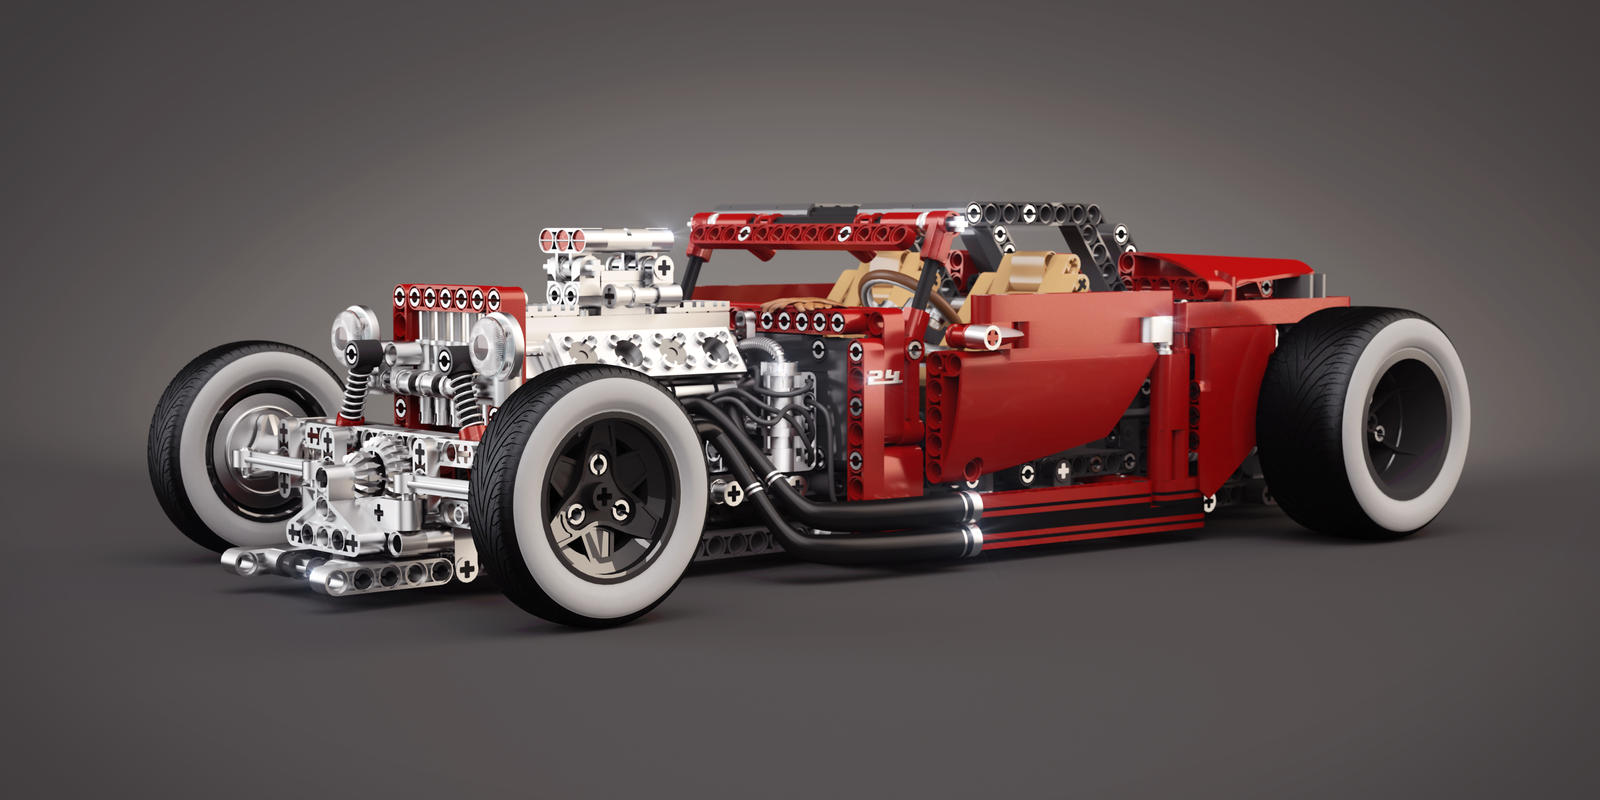 lego 8070 b model hot rod tuning by meszimate on. Black Bedroom Furniture Sets. Home Design Ideas